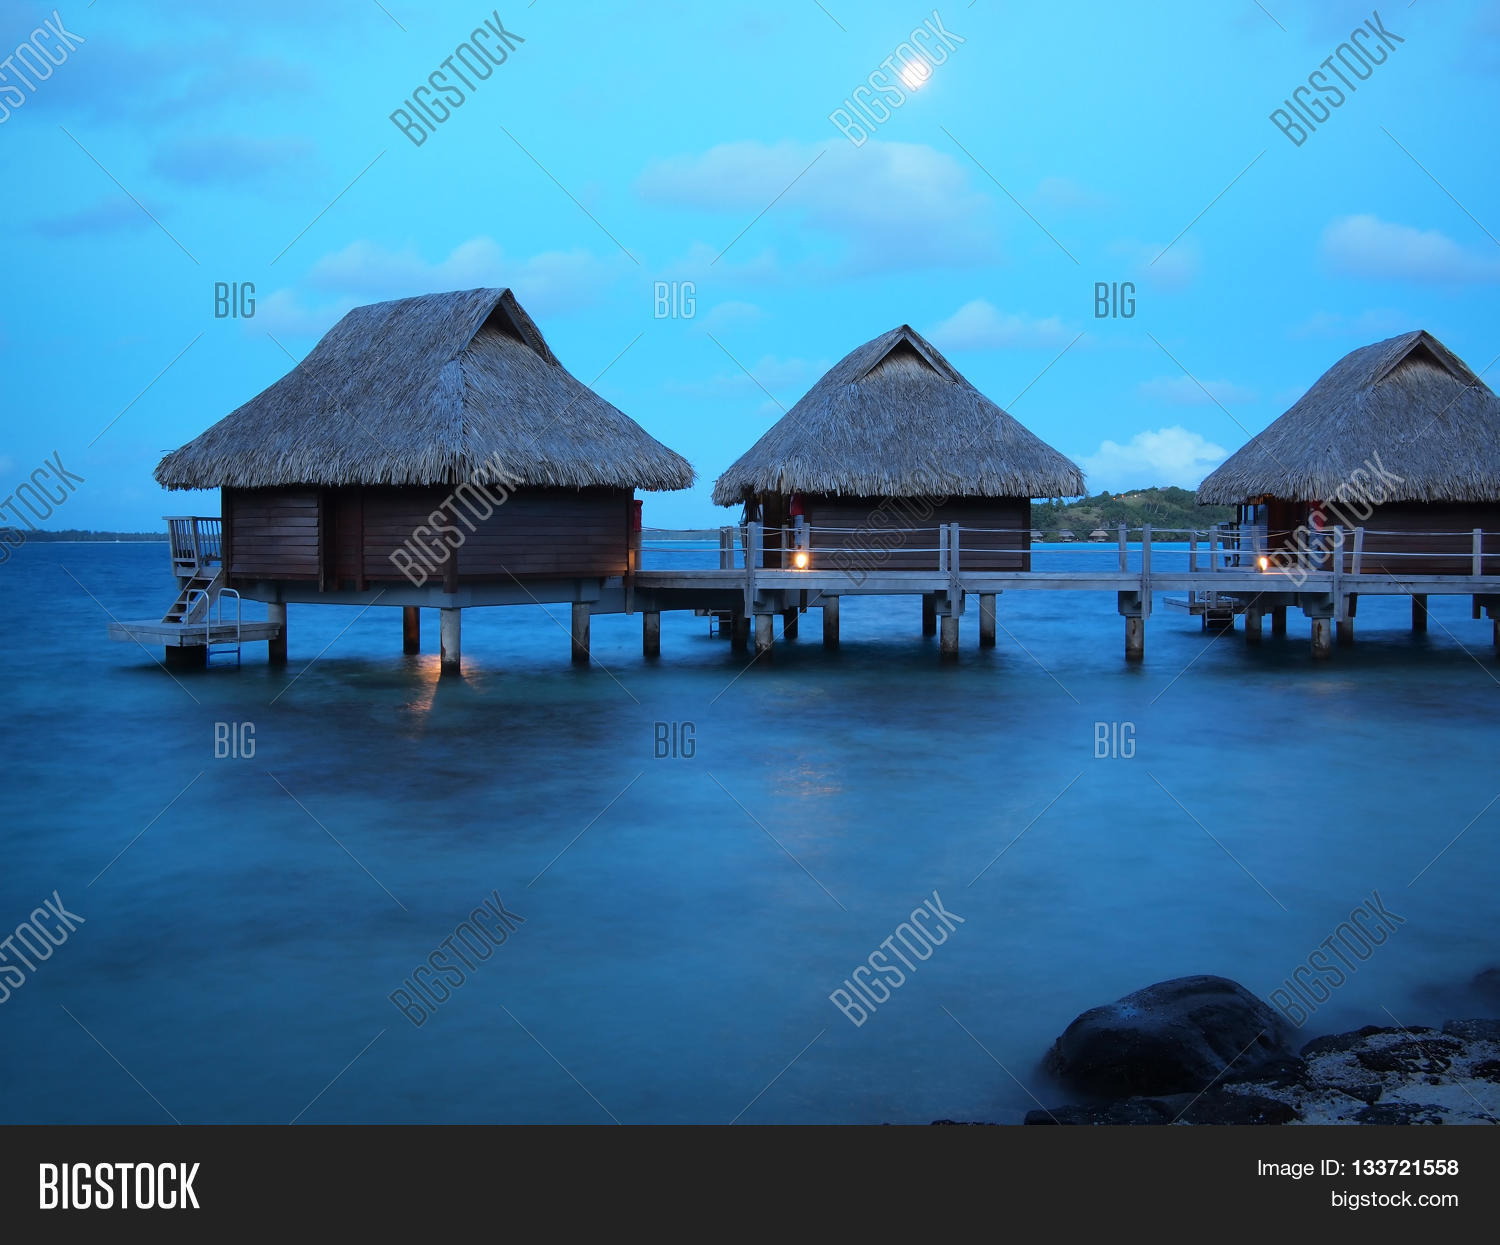 Three Thatched Roof Image Photo Free Trial Bigstock